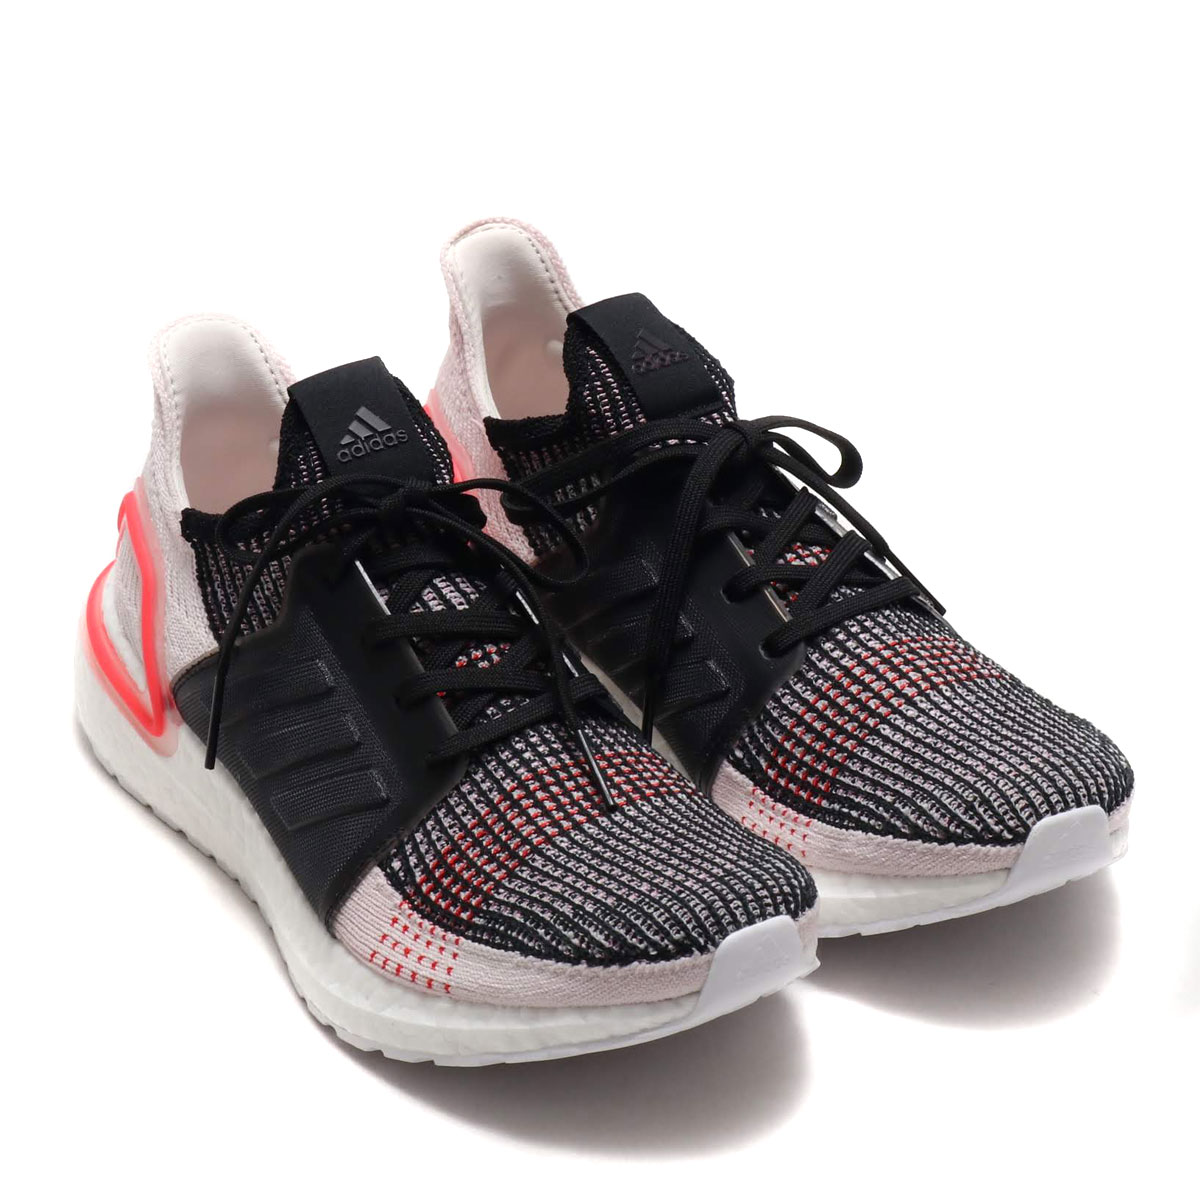 online retailer 3bbb3 46725 adidas UltraBOOST 19 (CORE BLACK ORCHID TINT ACTIVE RED) (Adidas ultra  boost 19)